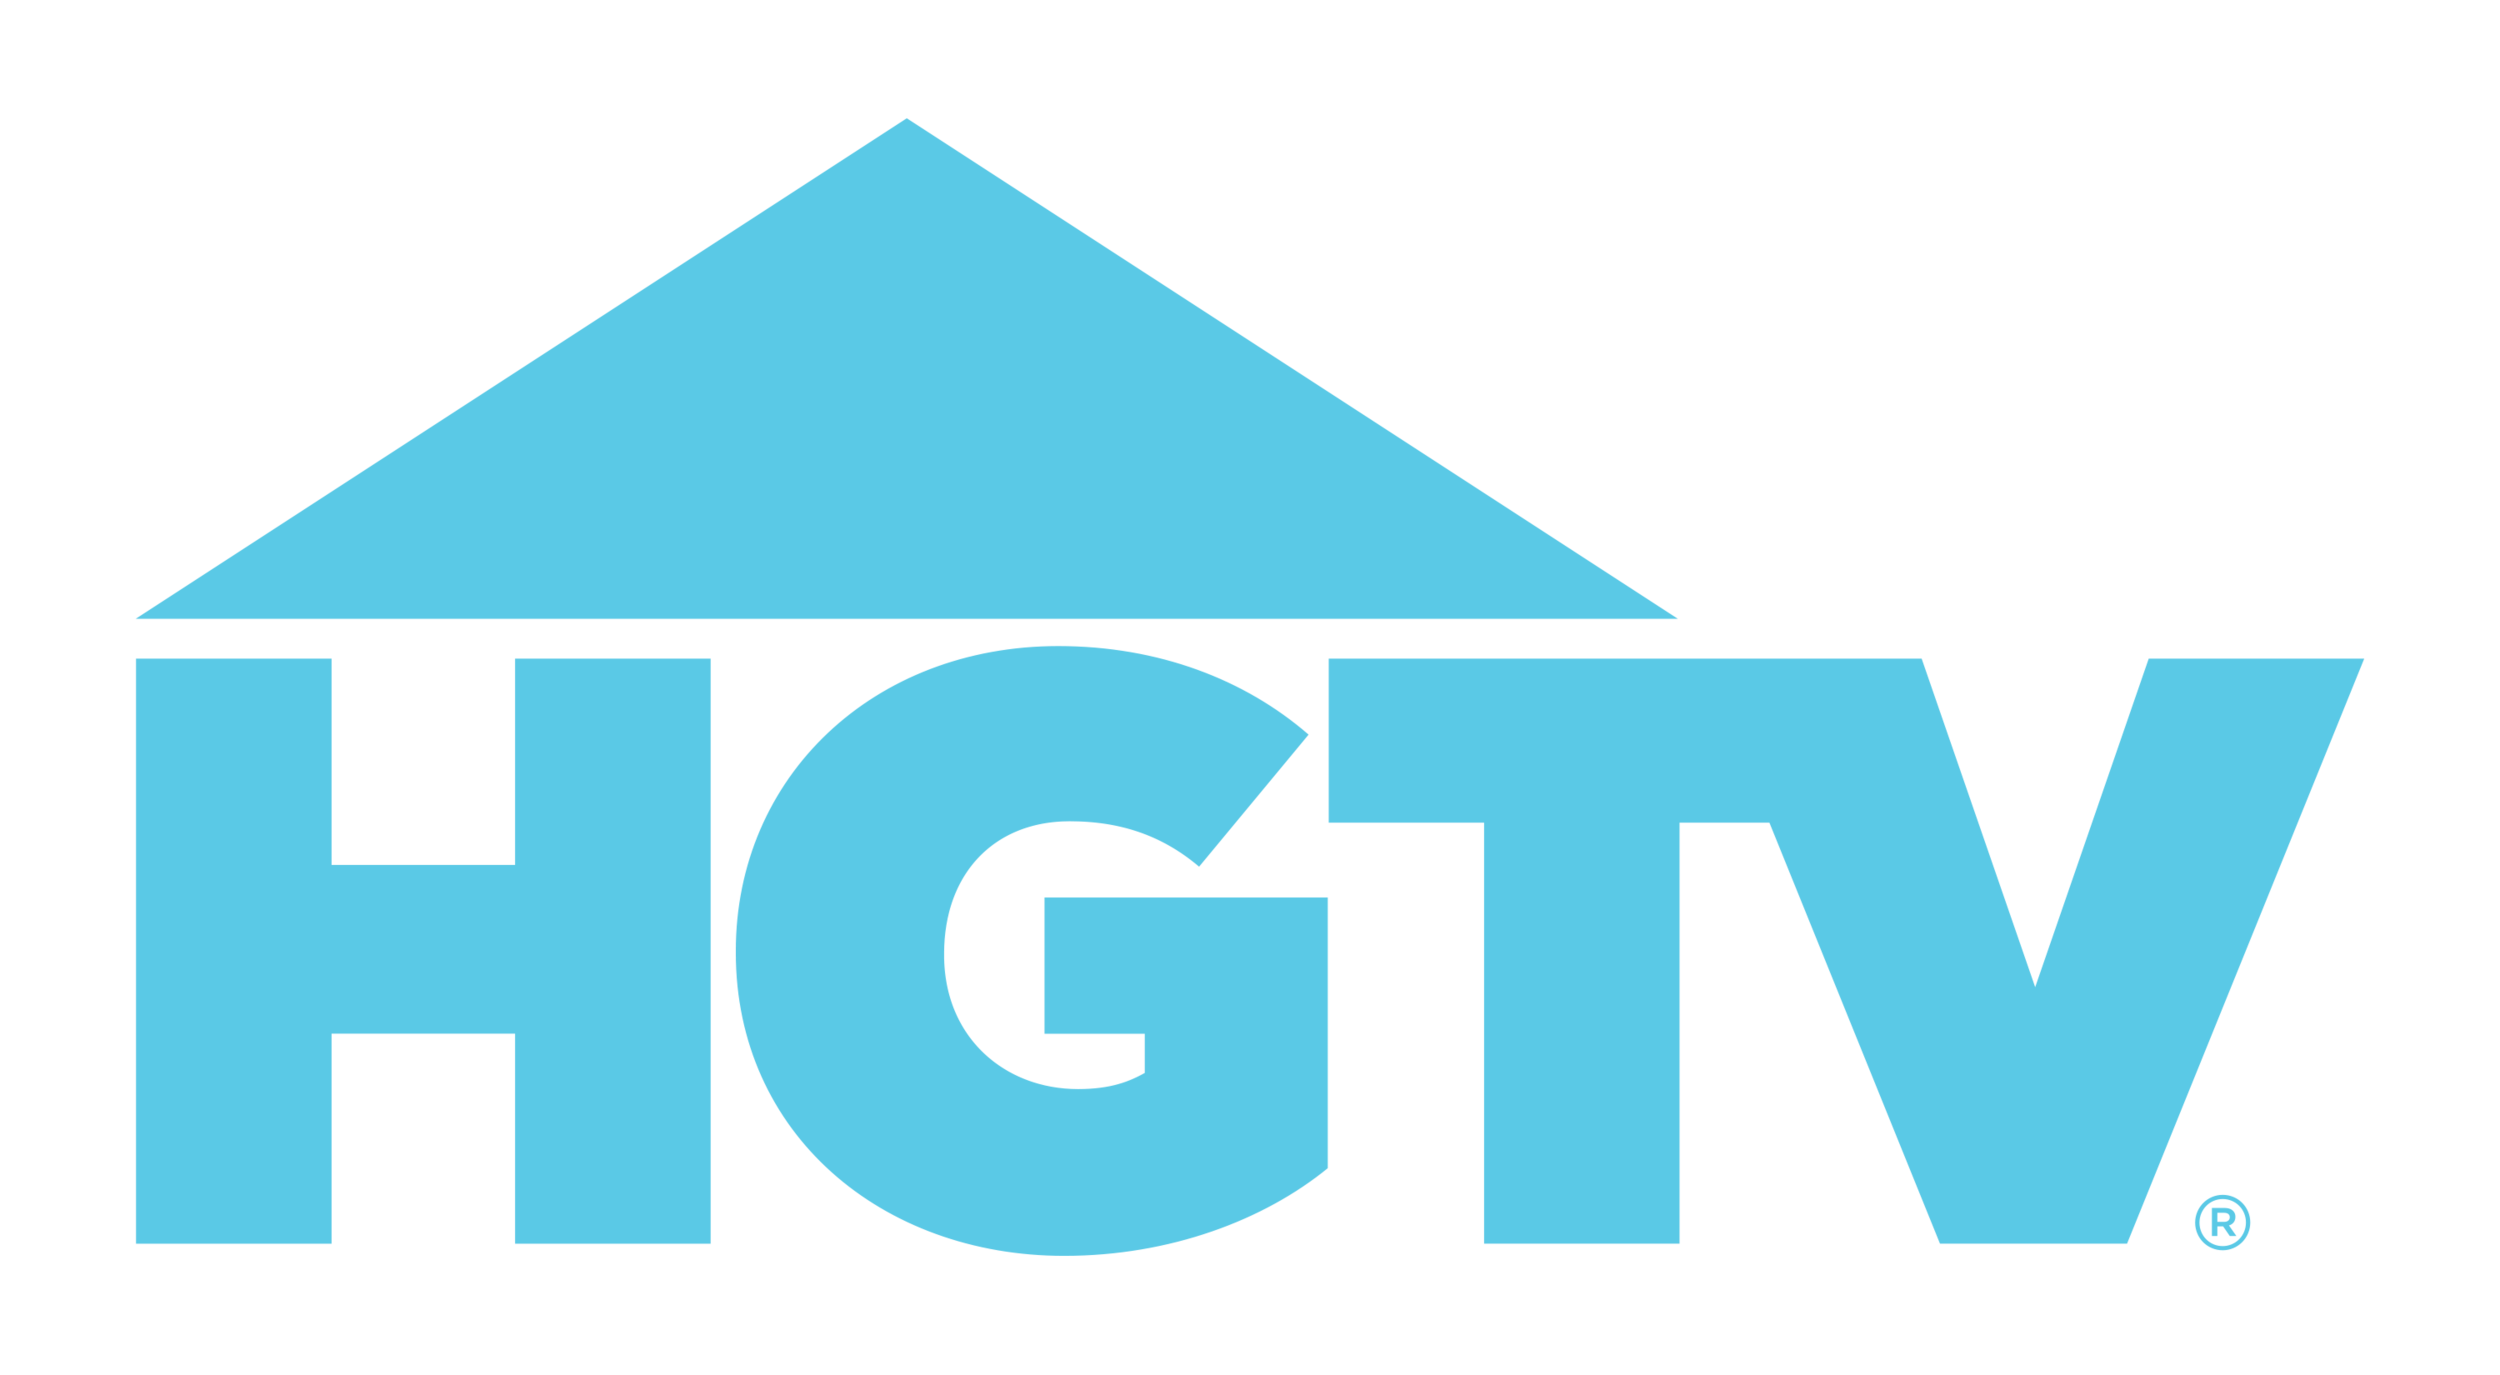 HGTV_Registered_Blue.png